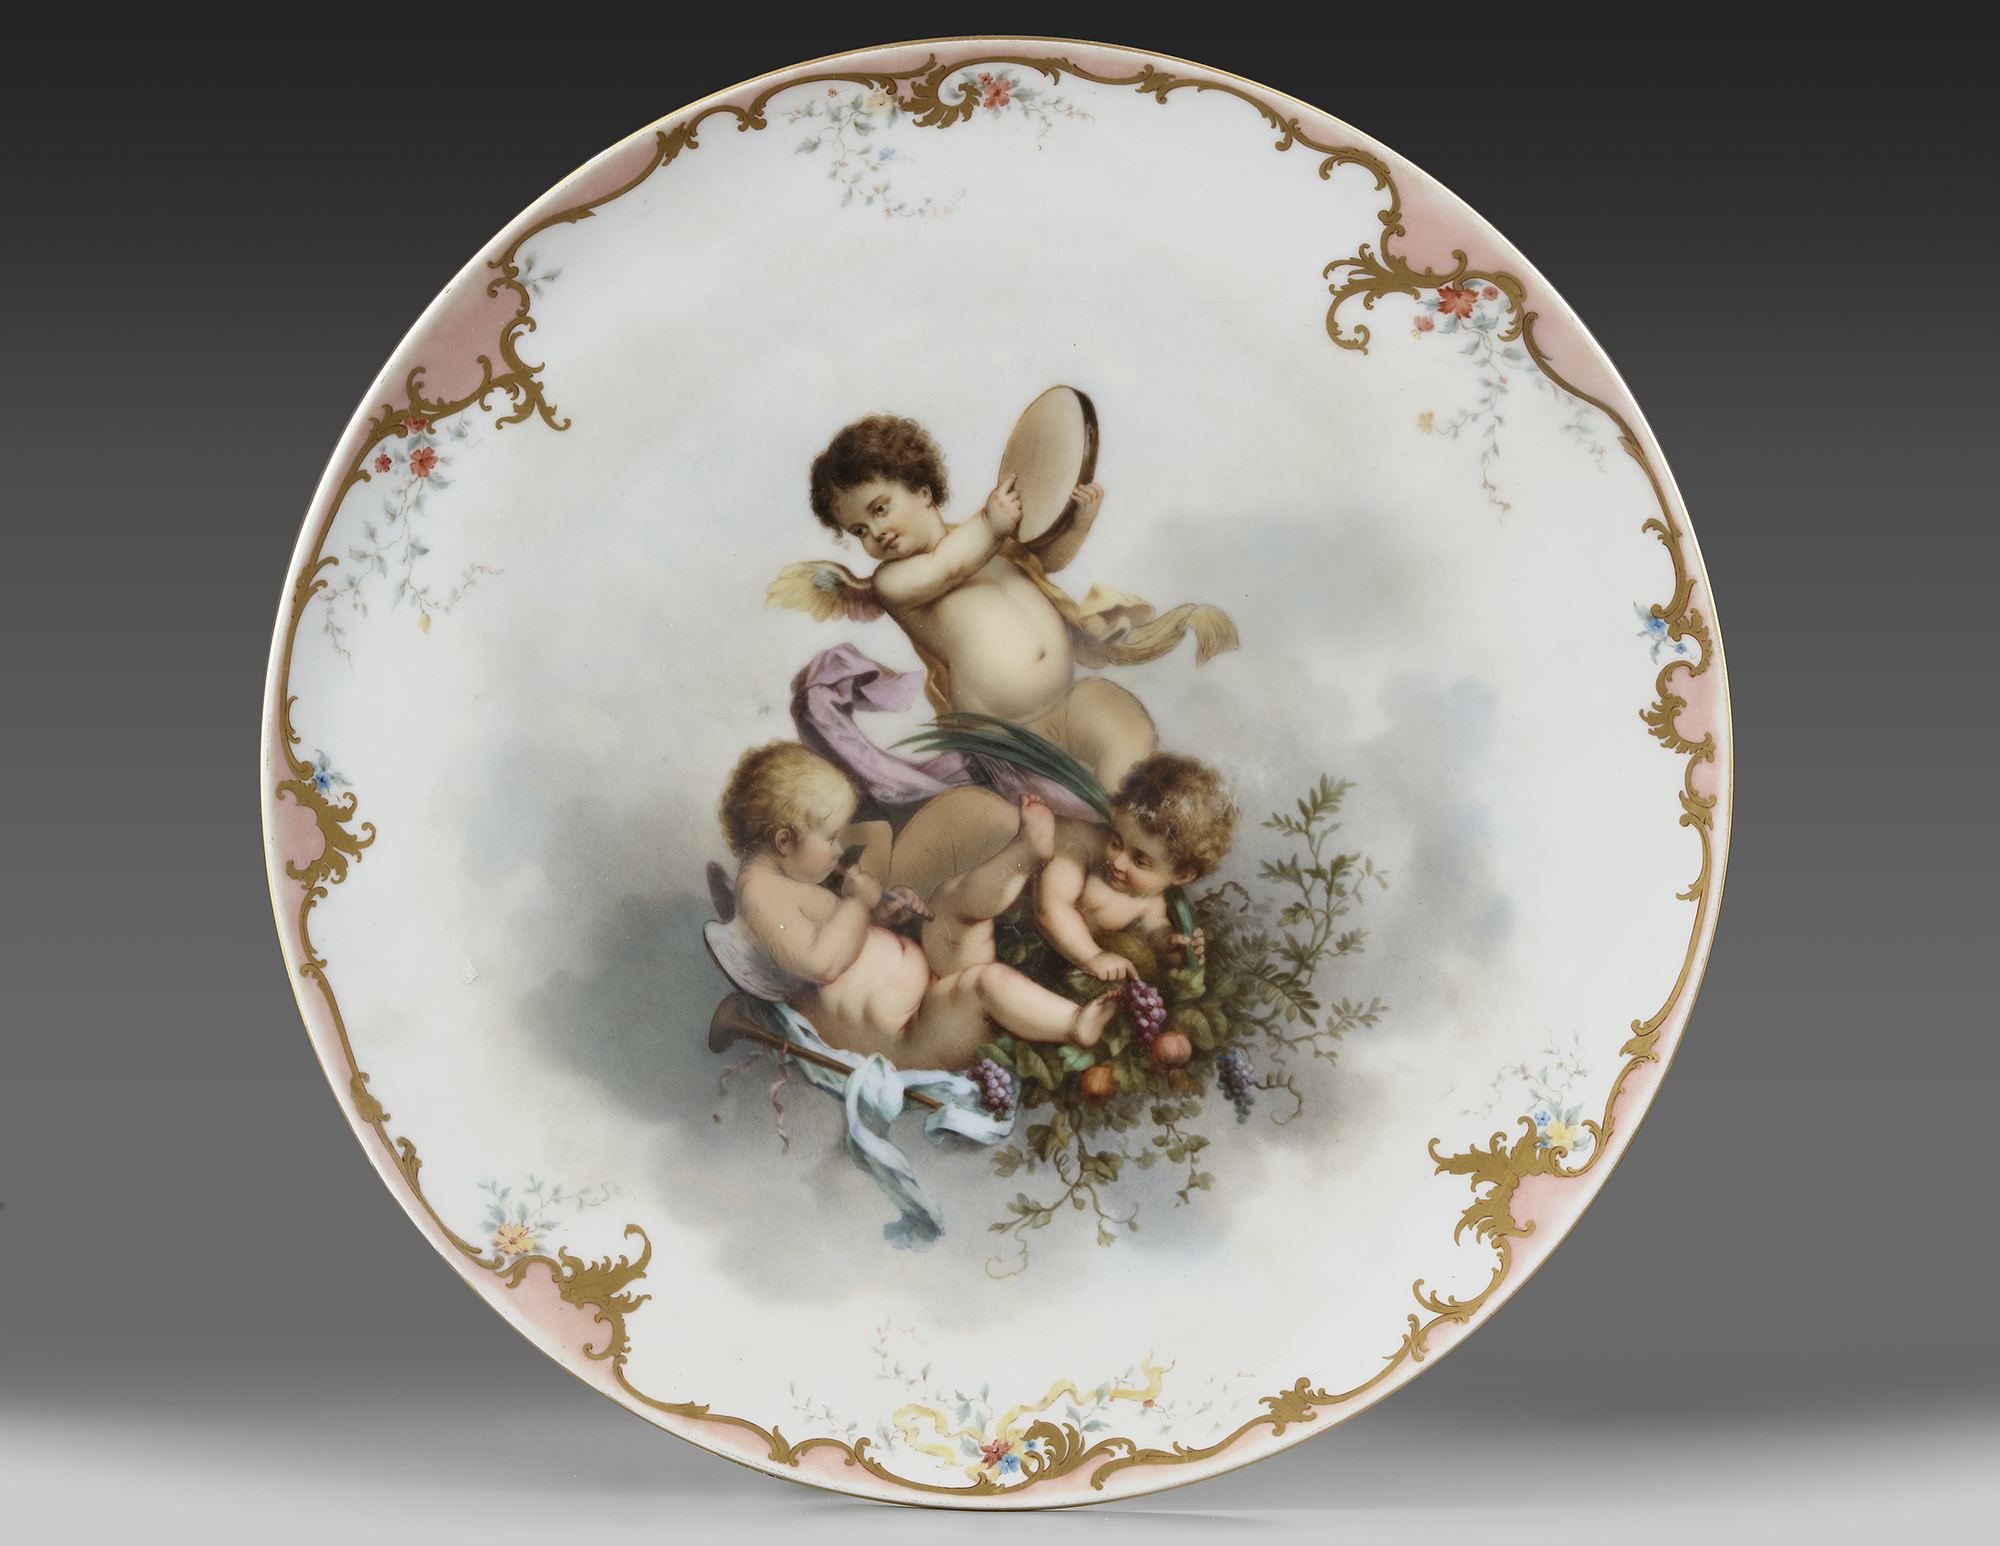 A FRENCH PORCELAIN PLATE, LATE 19TH CENTURY